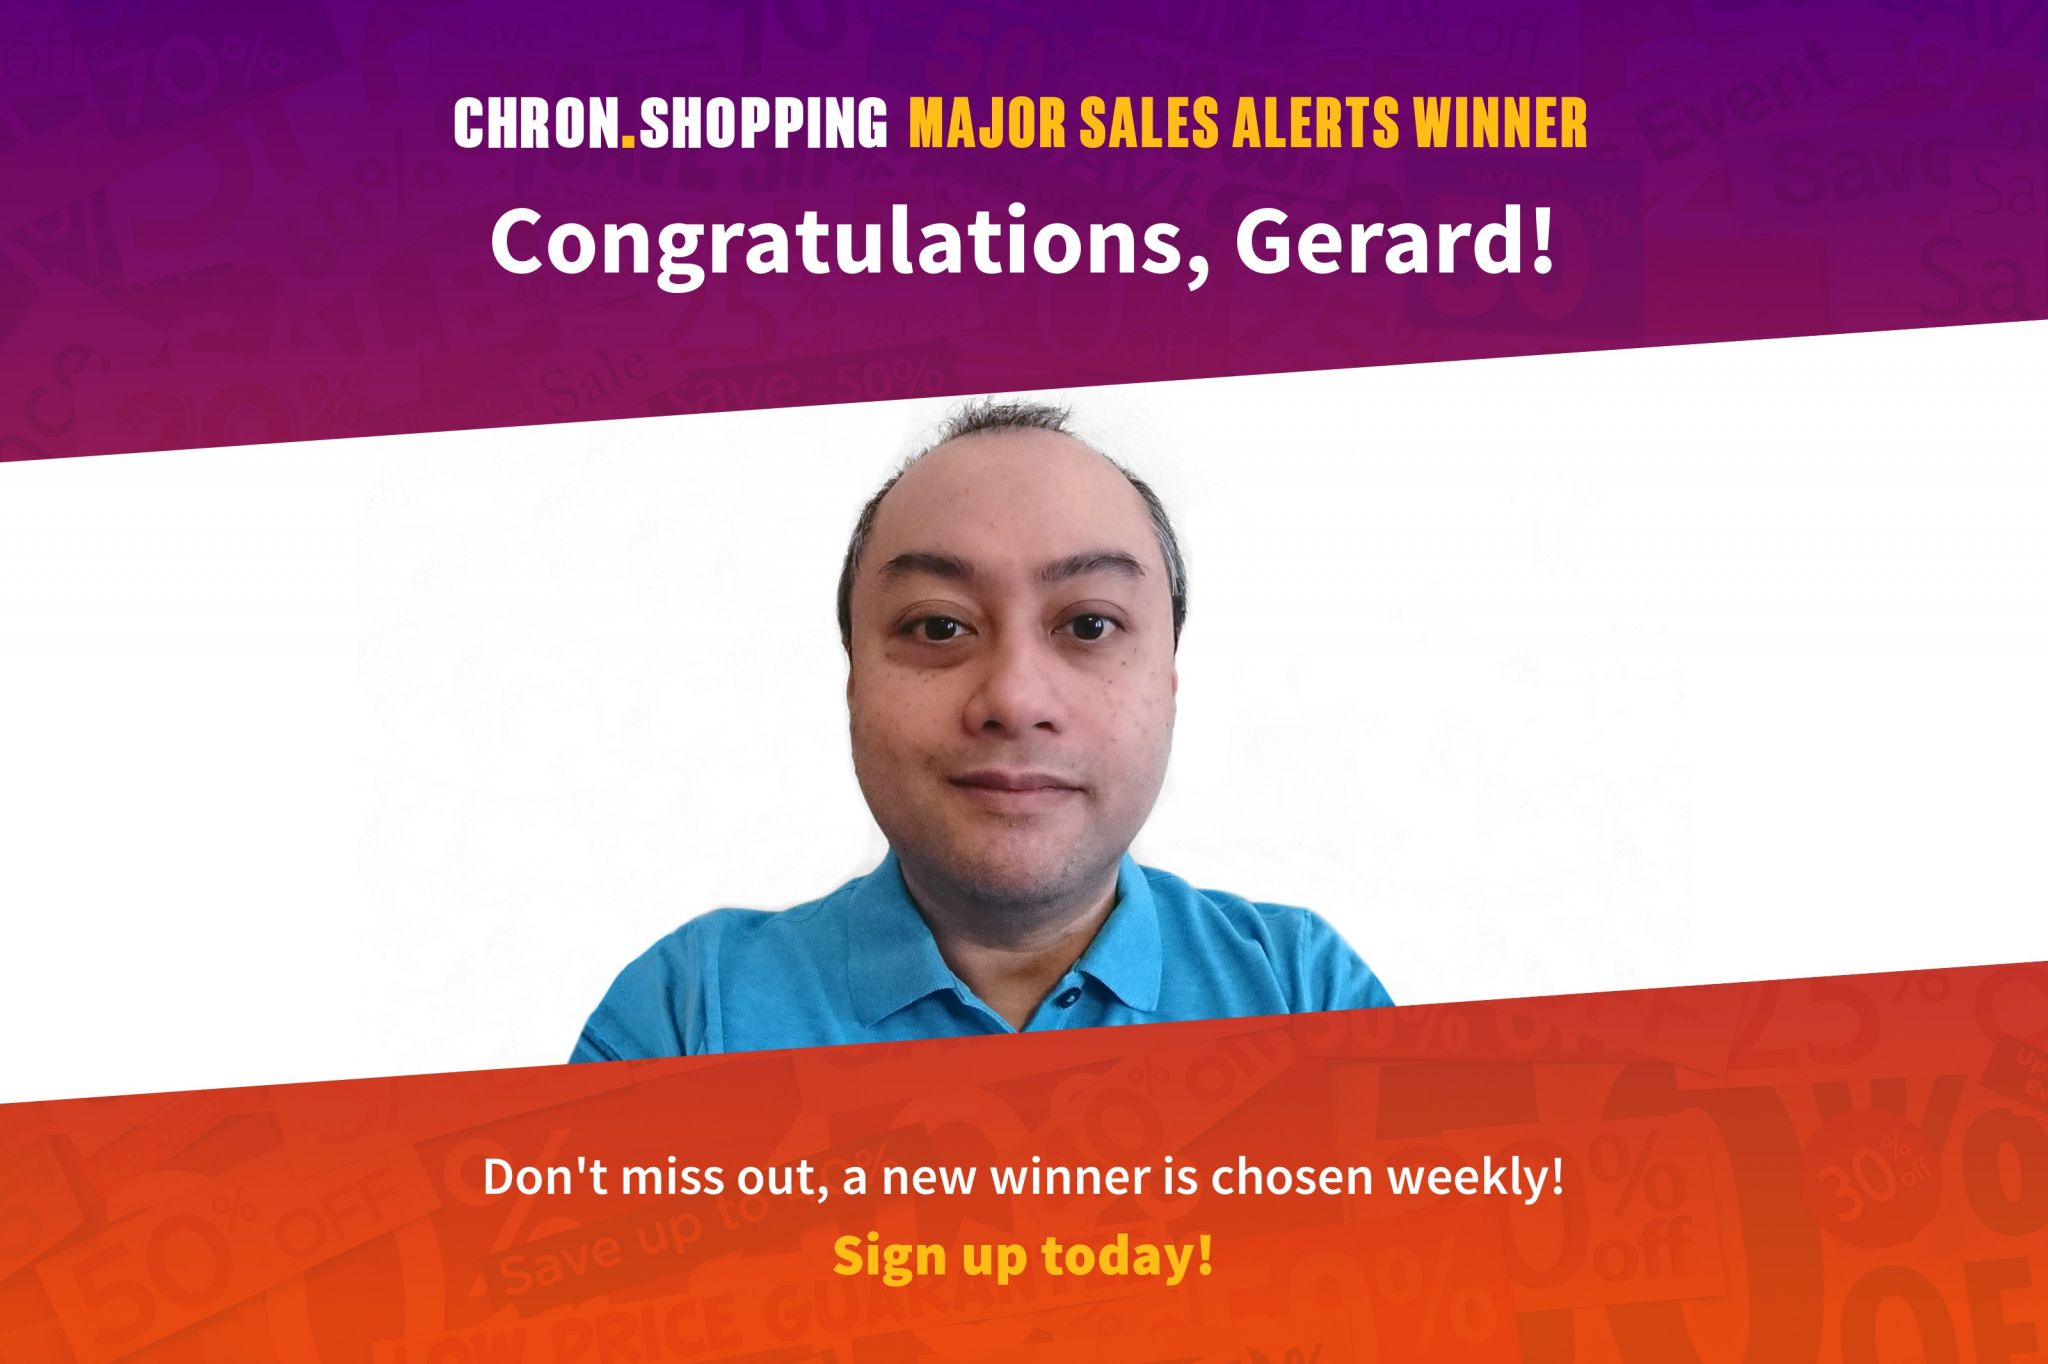 Gerard is the 7th winner of $1,000 to spend at H-E-B. Sign up for our Major Sales Alerts and you may be our final winner!